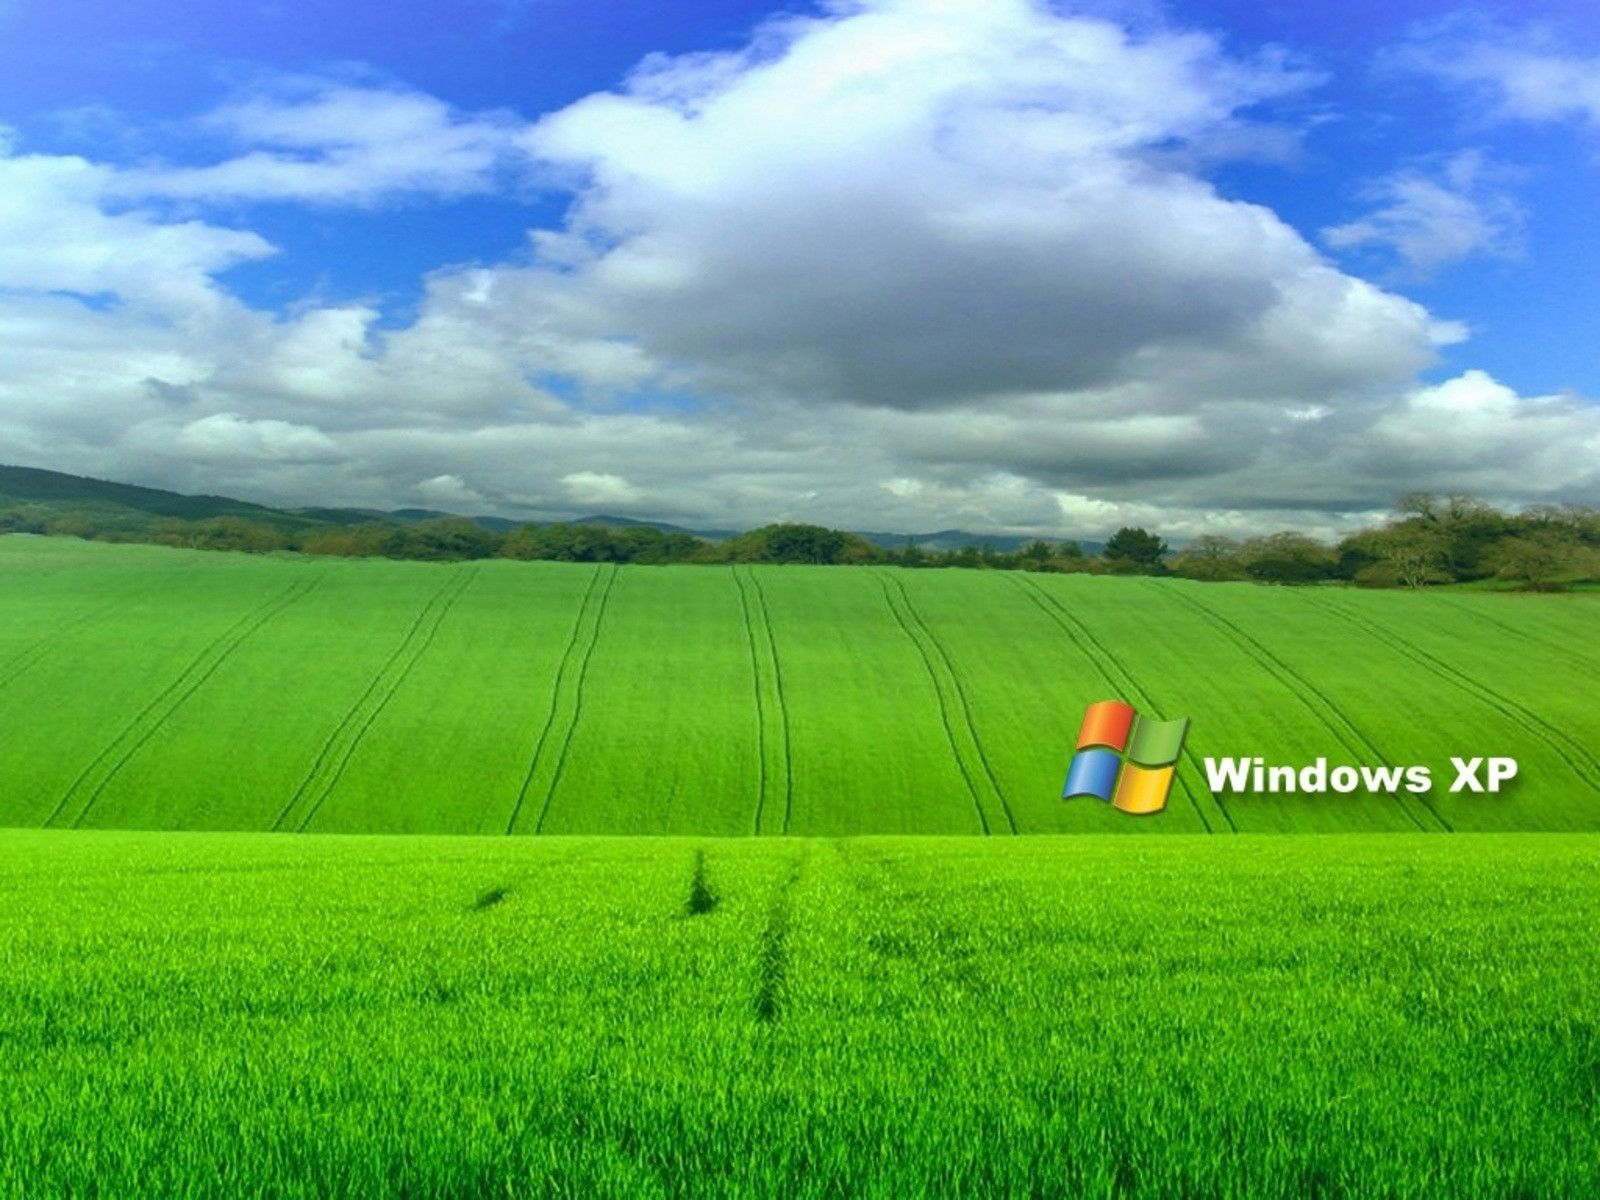 windows desktop backgrounds x wallpaper best free hd 1920a—1080 free windows desktop backgrounds